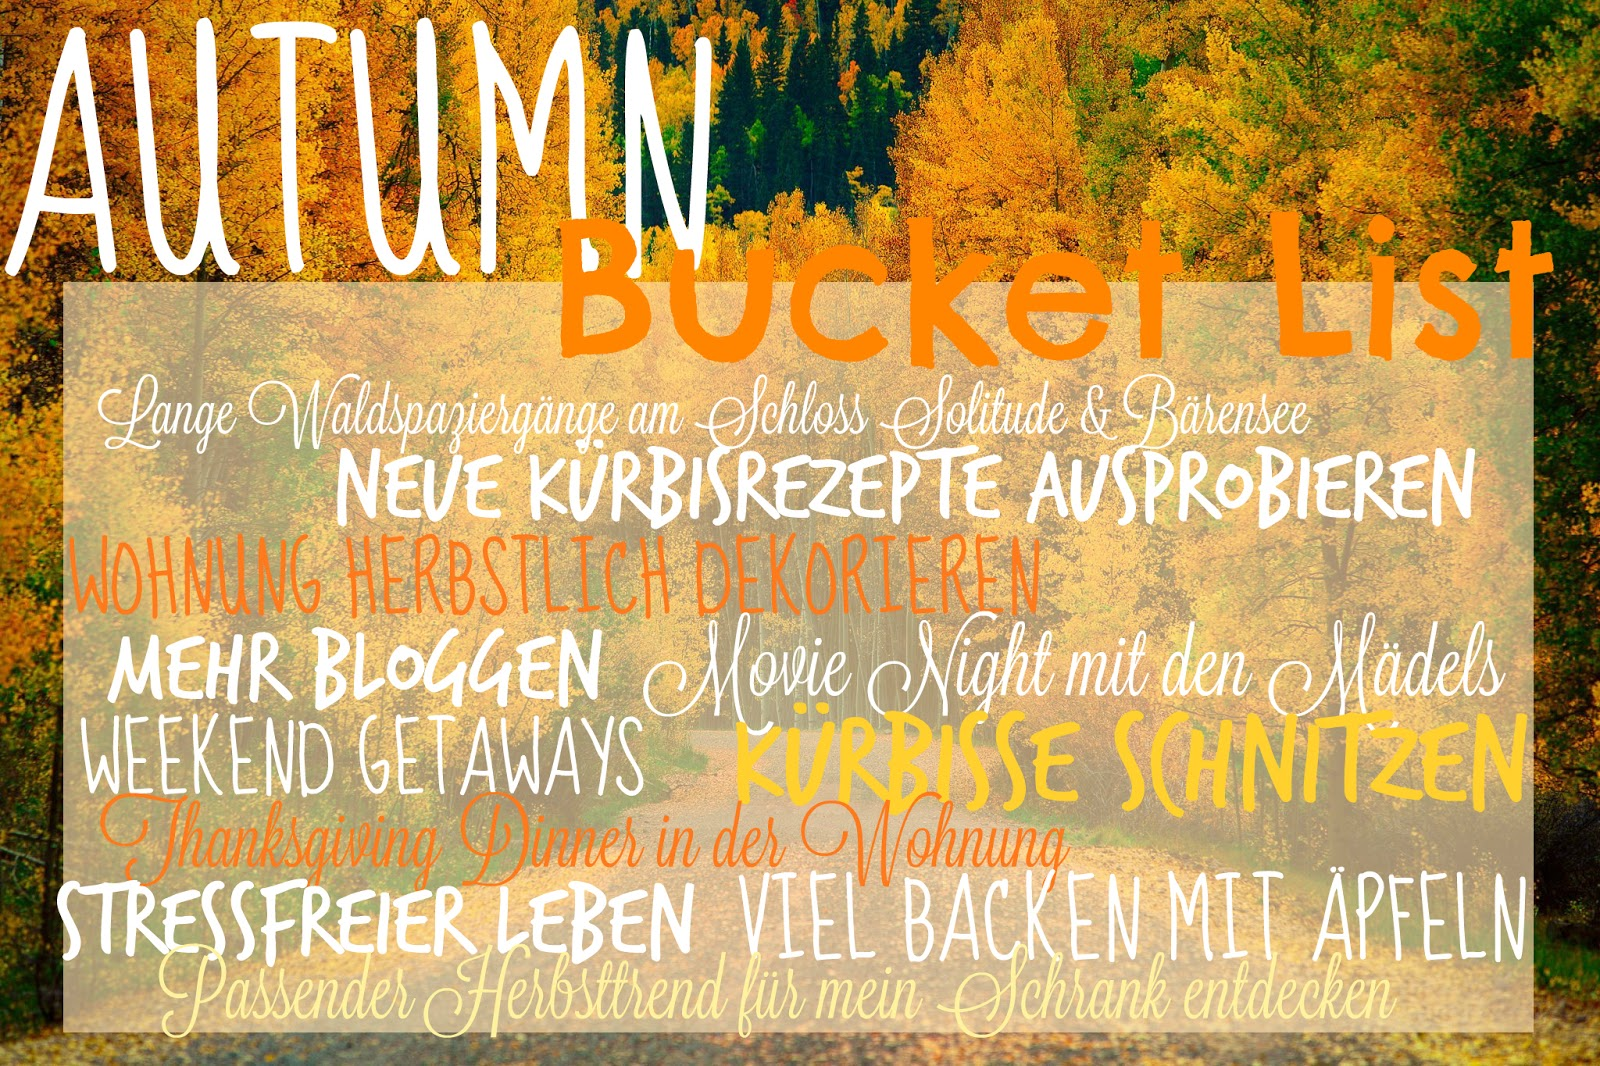 Autumn Bucket List Fall Things to do in Fall www.theblondelion.com